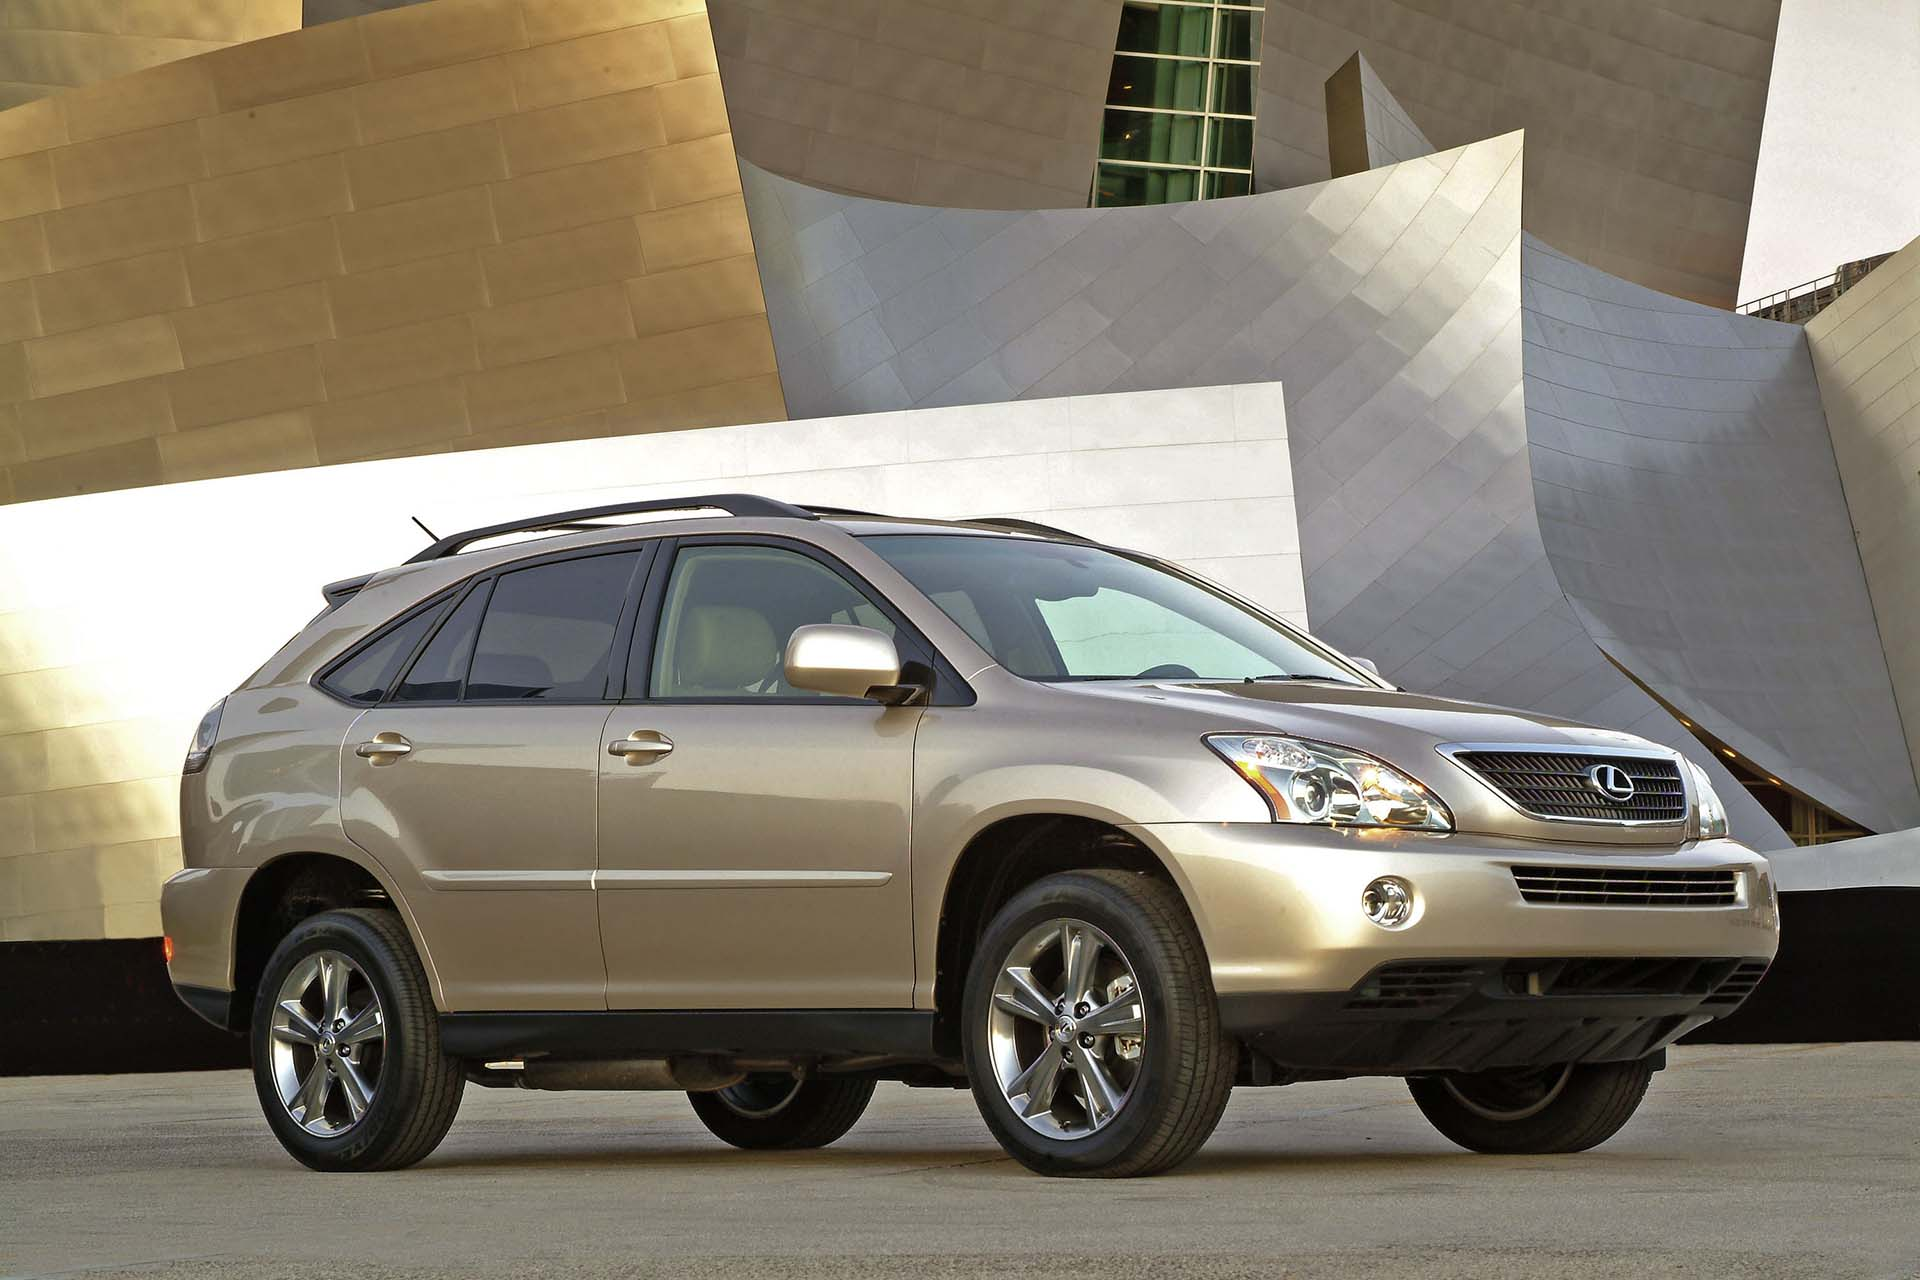 The second-generation RX was already slipperier than the debut model, and had a coefficient of drag of just 0.35 – excellent for a mid-sized SUV. However, more could be done, especially for urban dwellers. In 2004, Lexus launched a hybridized version of the RX, which took proven V6 power and added Toyota's hybrid drive system.